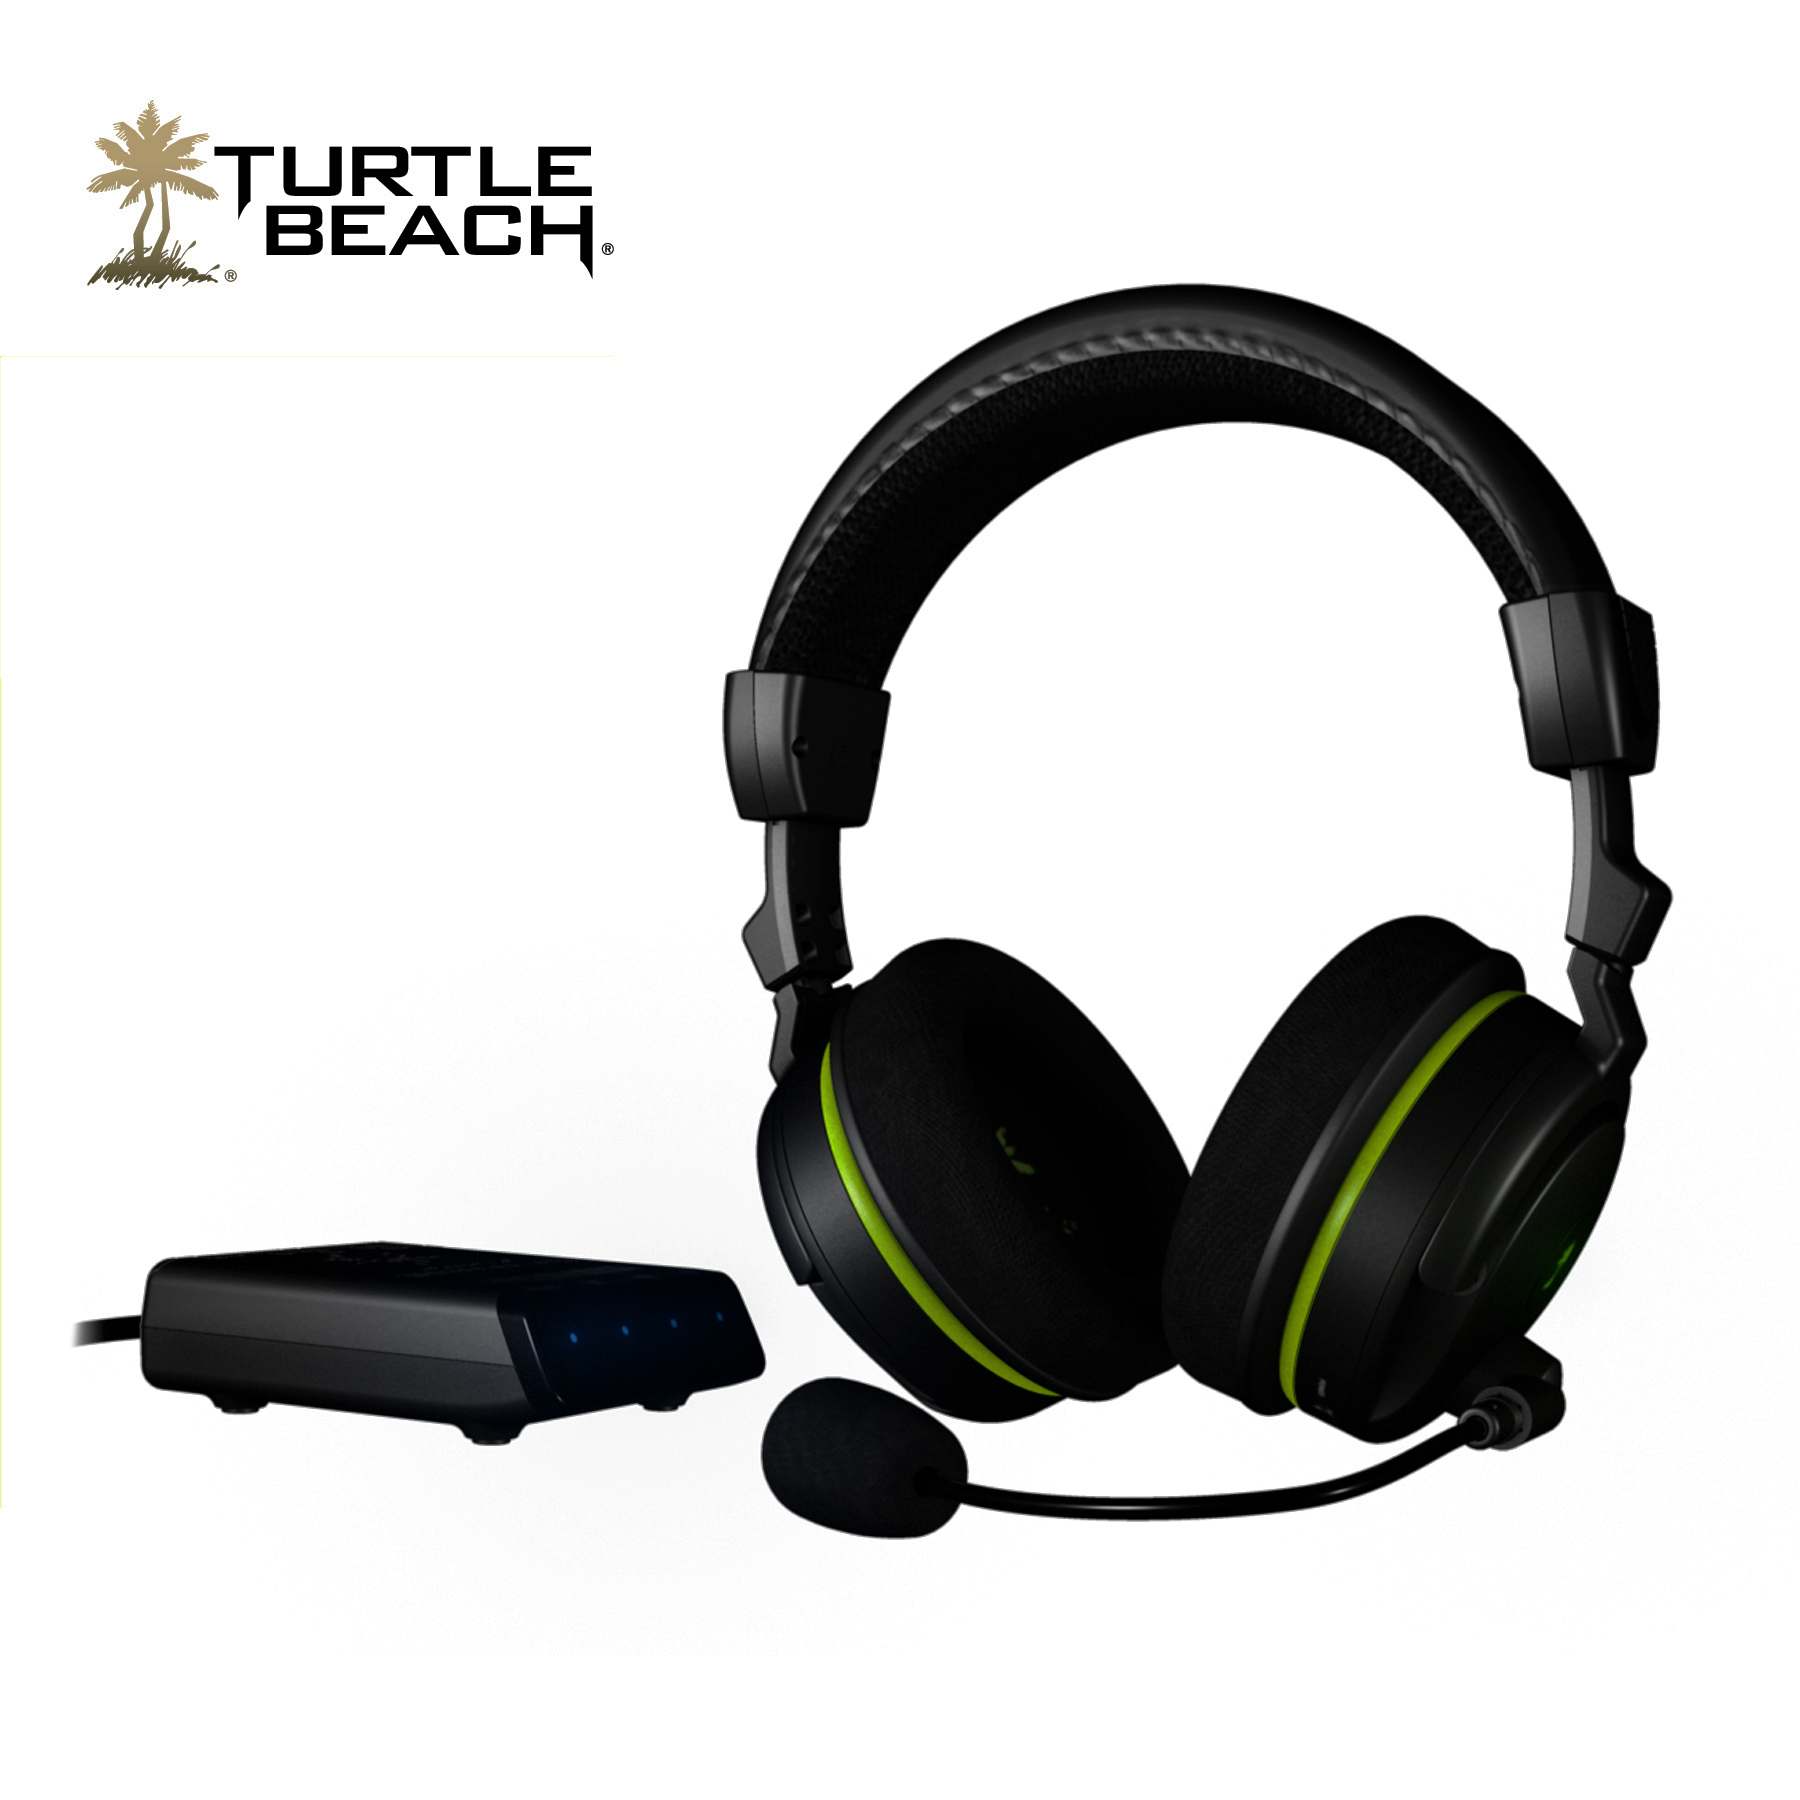 casque ear force x 42 sans fil pour xbox 360 back to the geek. Black Bedroom Furniture Sets. Home Design Ideas